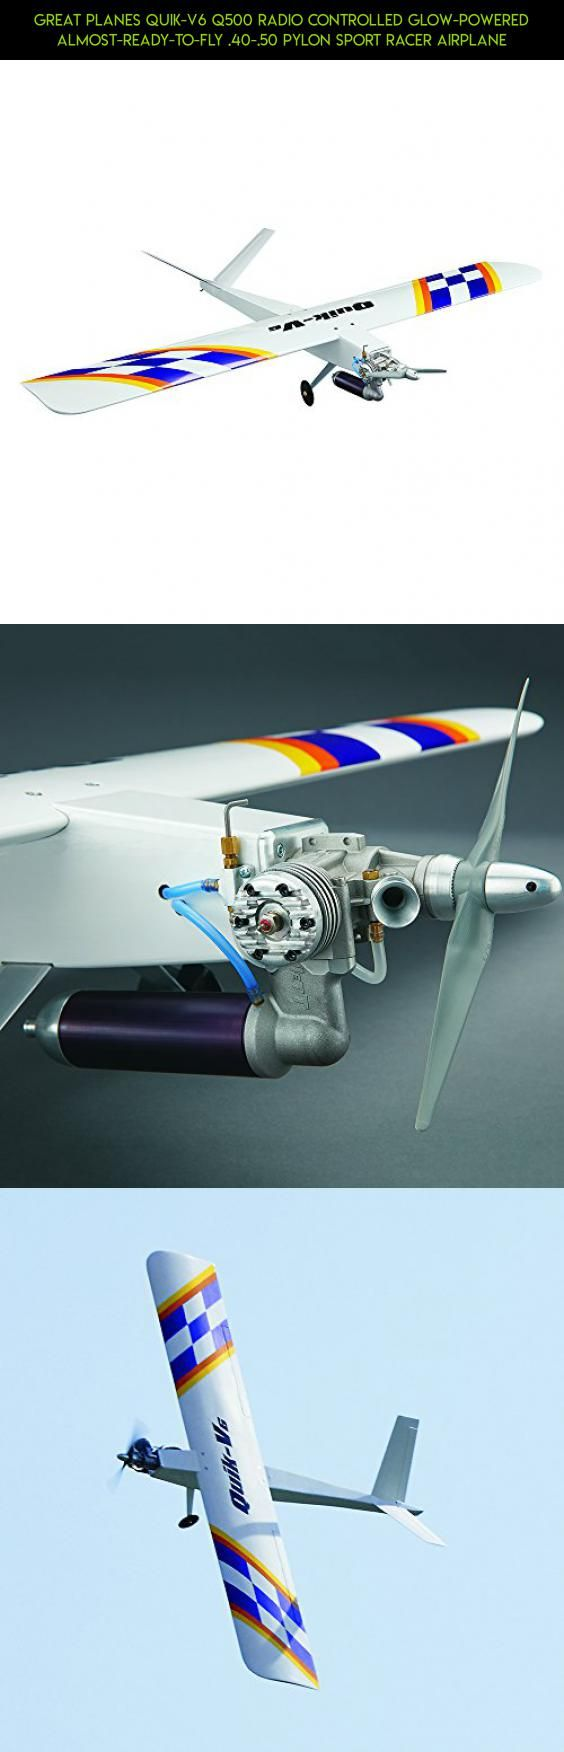 Great Planes Quik-V6 Q500 Radio Controlled Glow-Powered Almost-Ready-to-Fly .40-.50 Pylon Sport Racer Airplane #great #technology #sport #tech #drone #products #plans #shopping #fpv #racing #gadgets #camera #ultra #planes #parts #kit